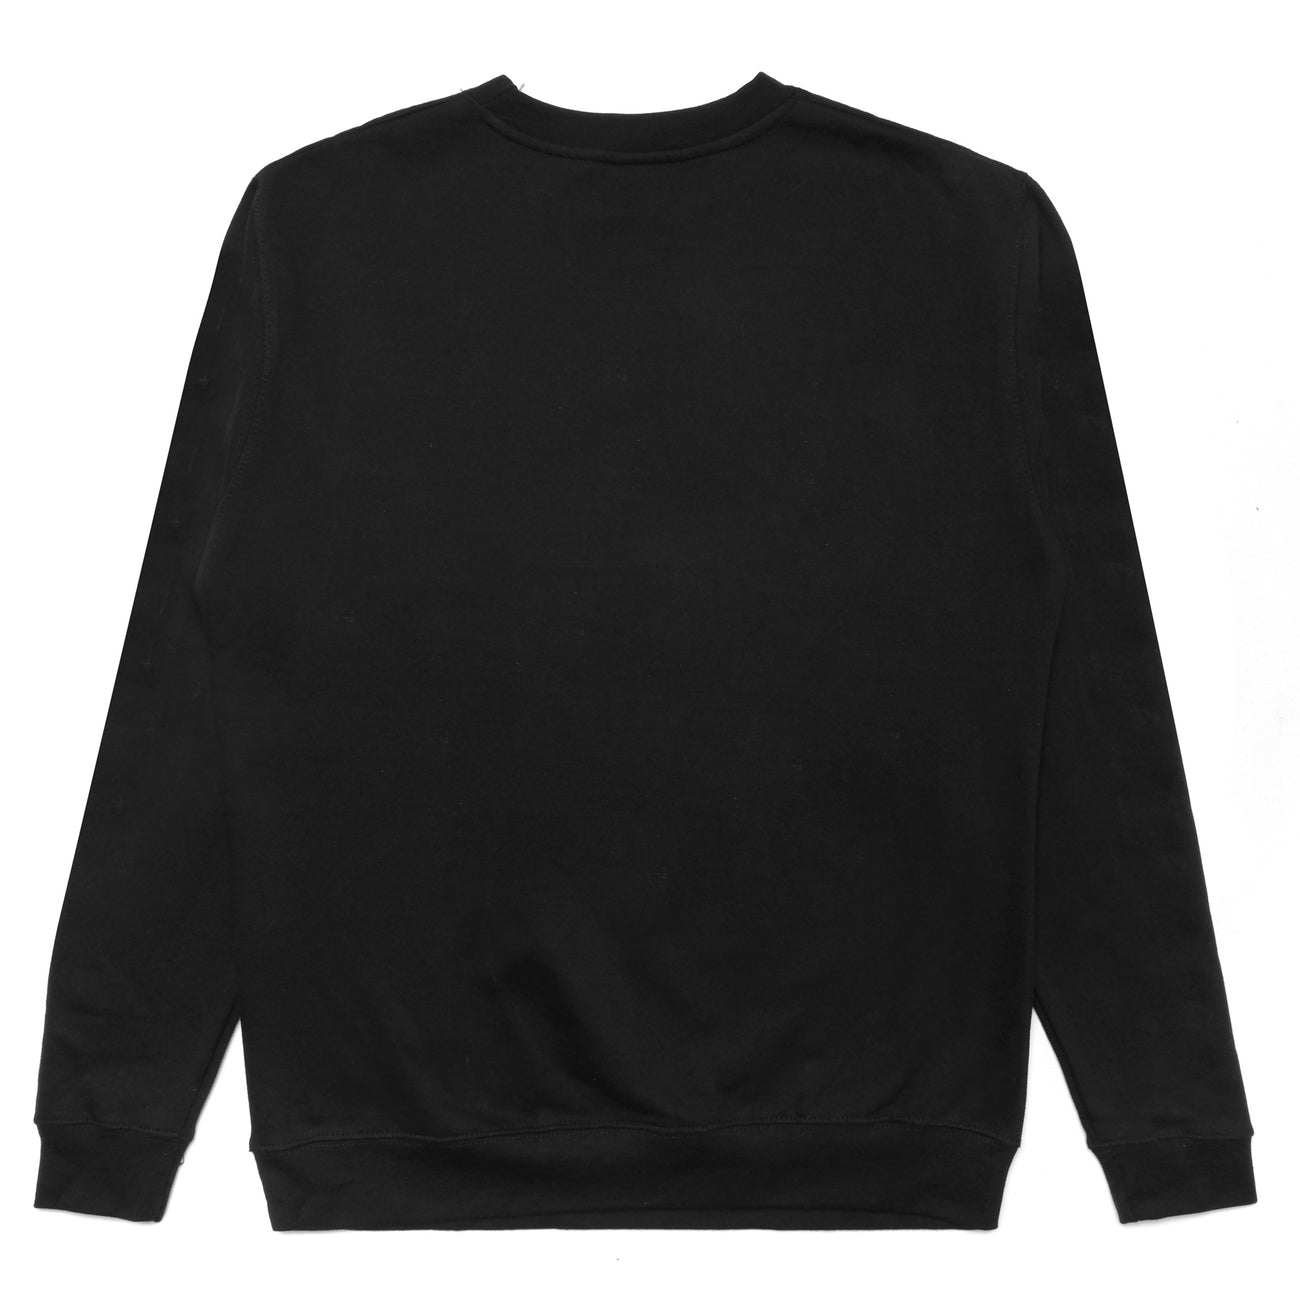 ATOMIC CREWNECK - BLACK